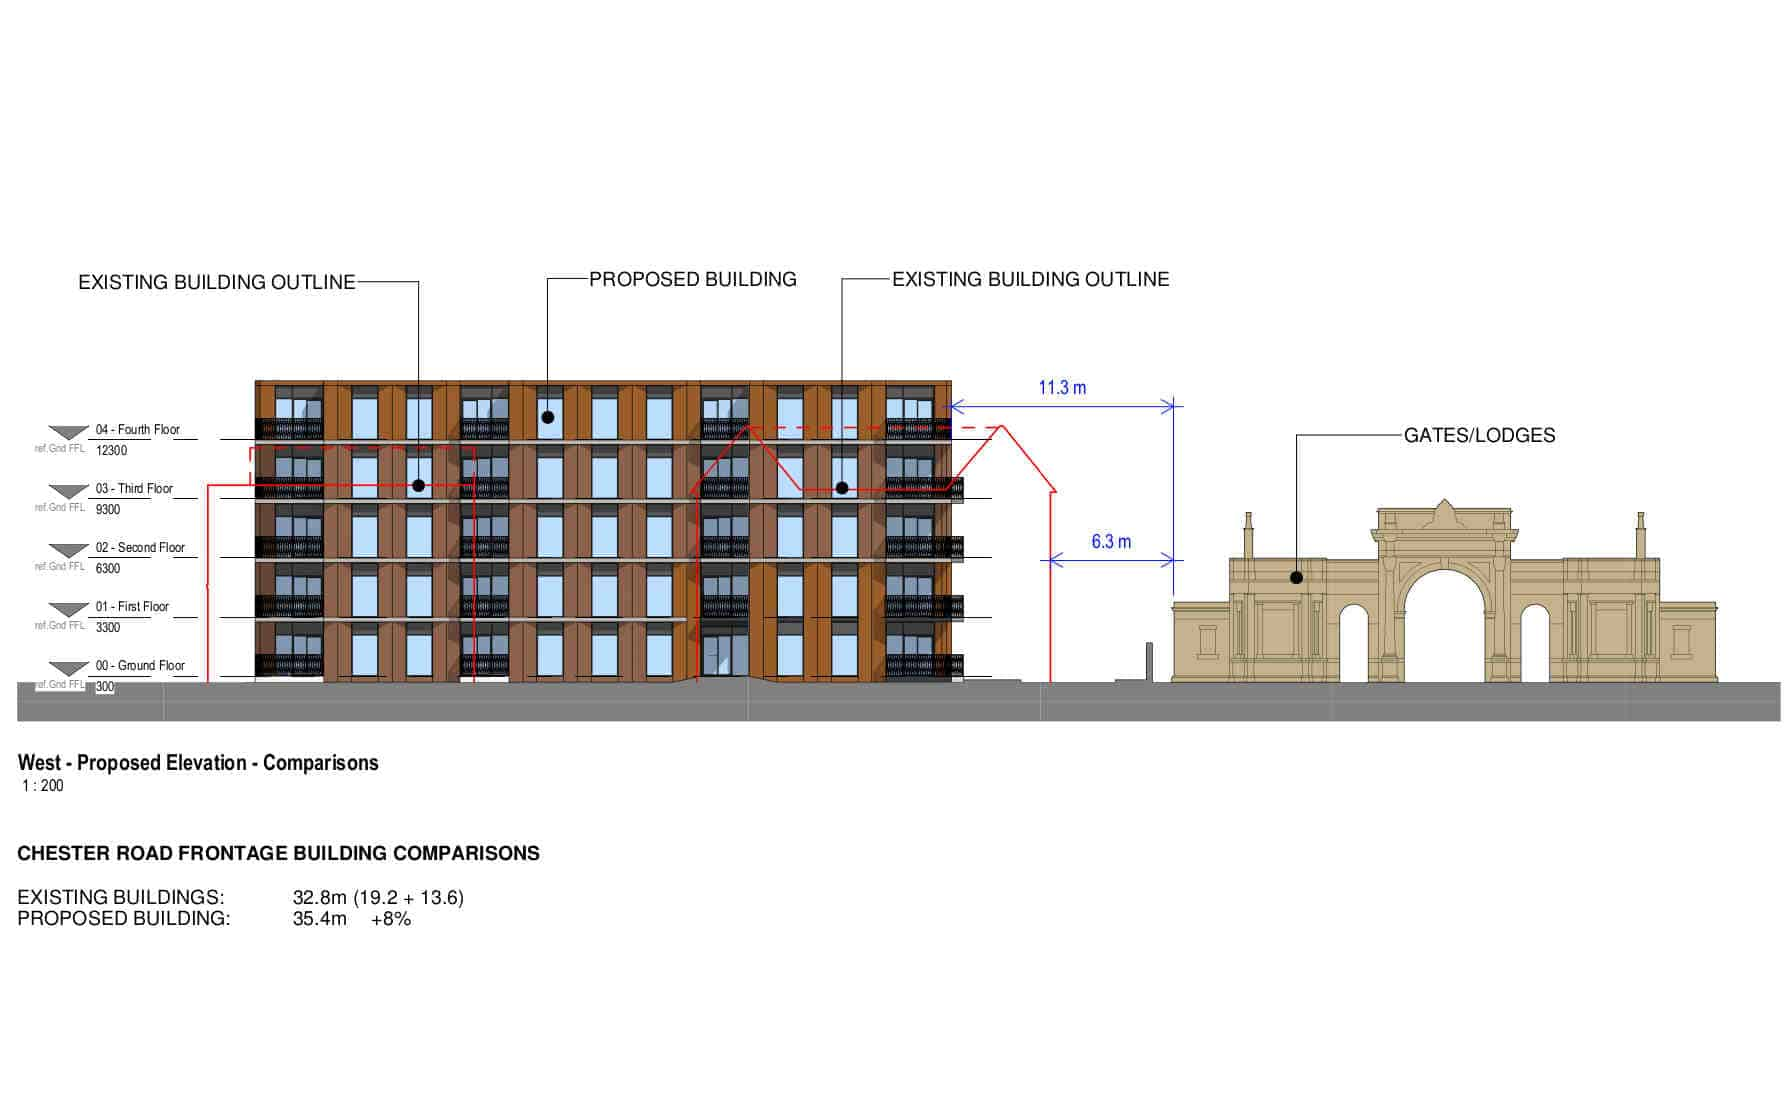 Greatstone Hotel flats rejected by planners